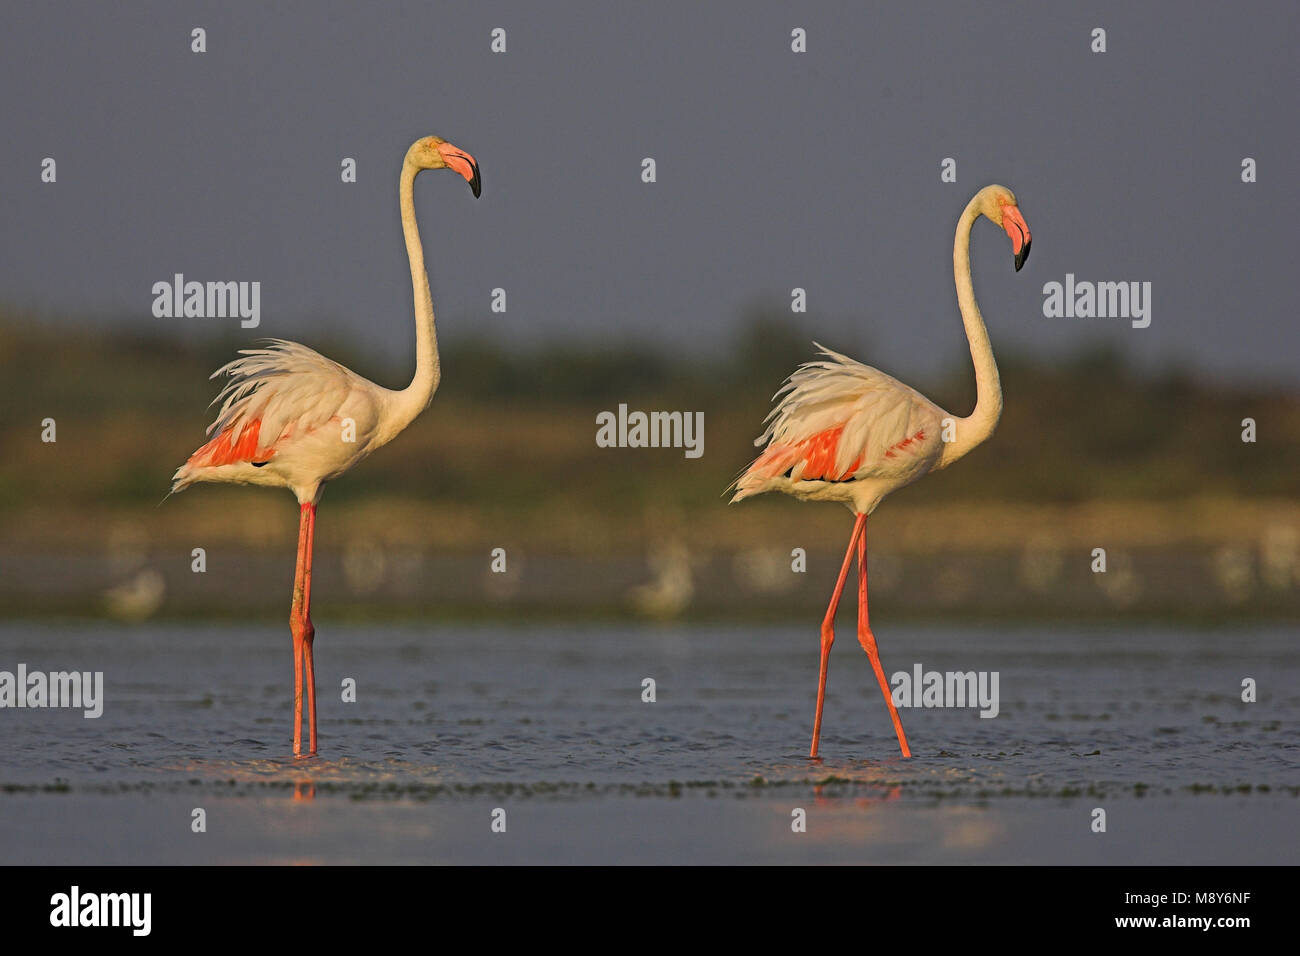 Flamingo in ondiep water; Greater Flamingo in shallow water - Stock Image